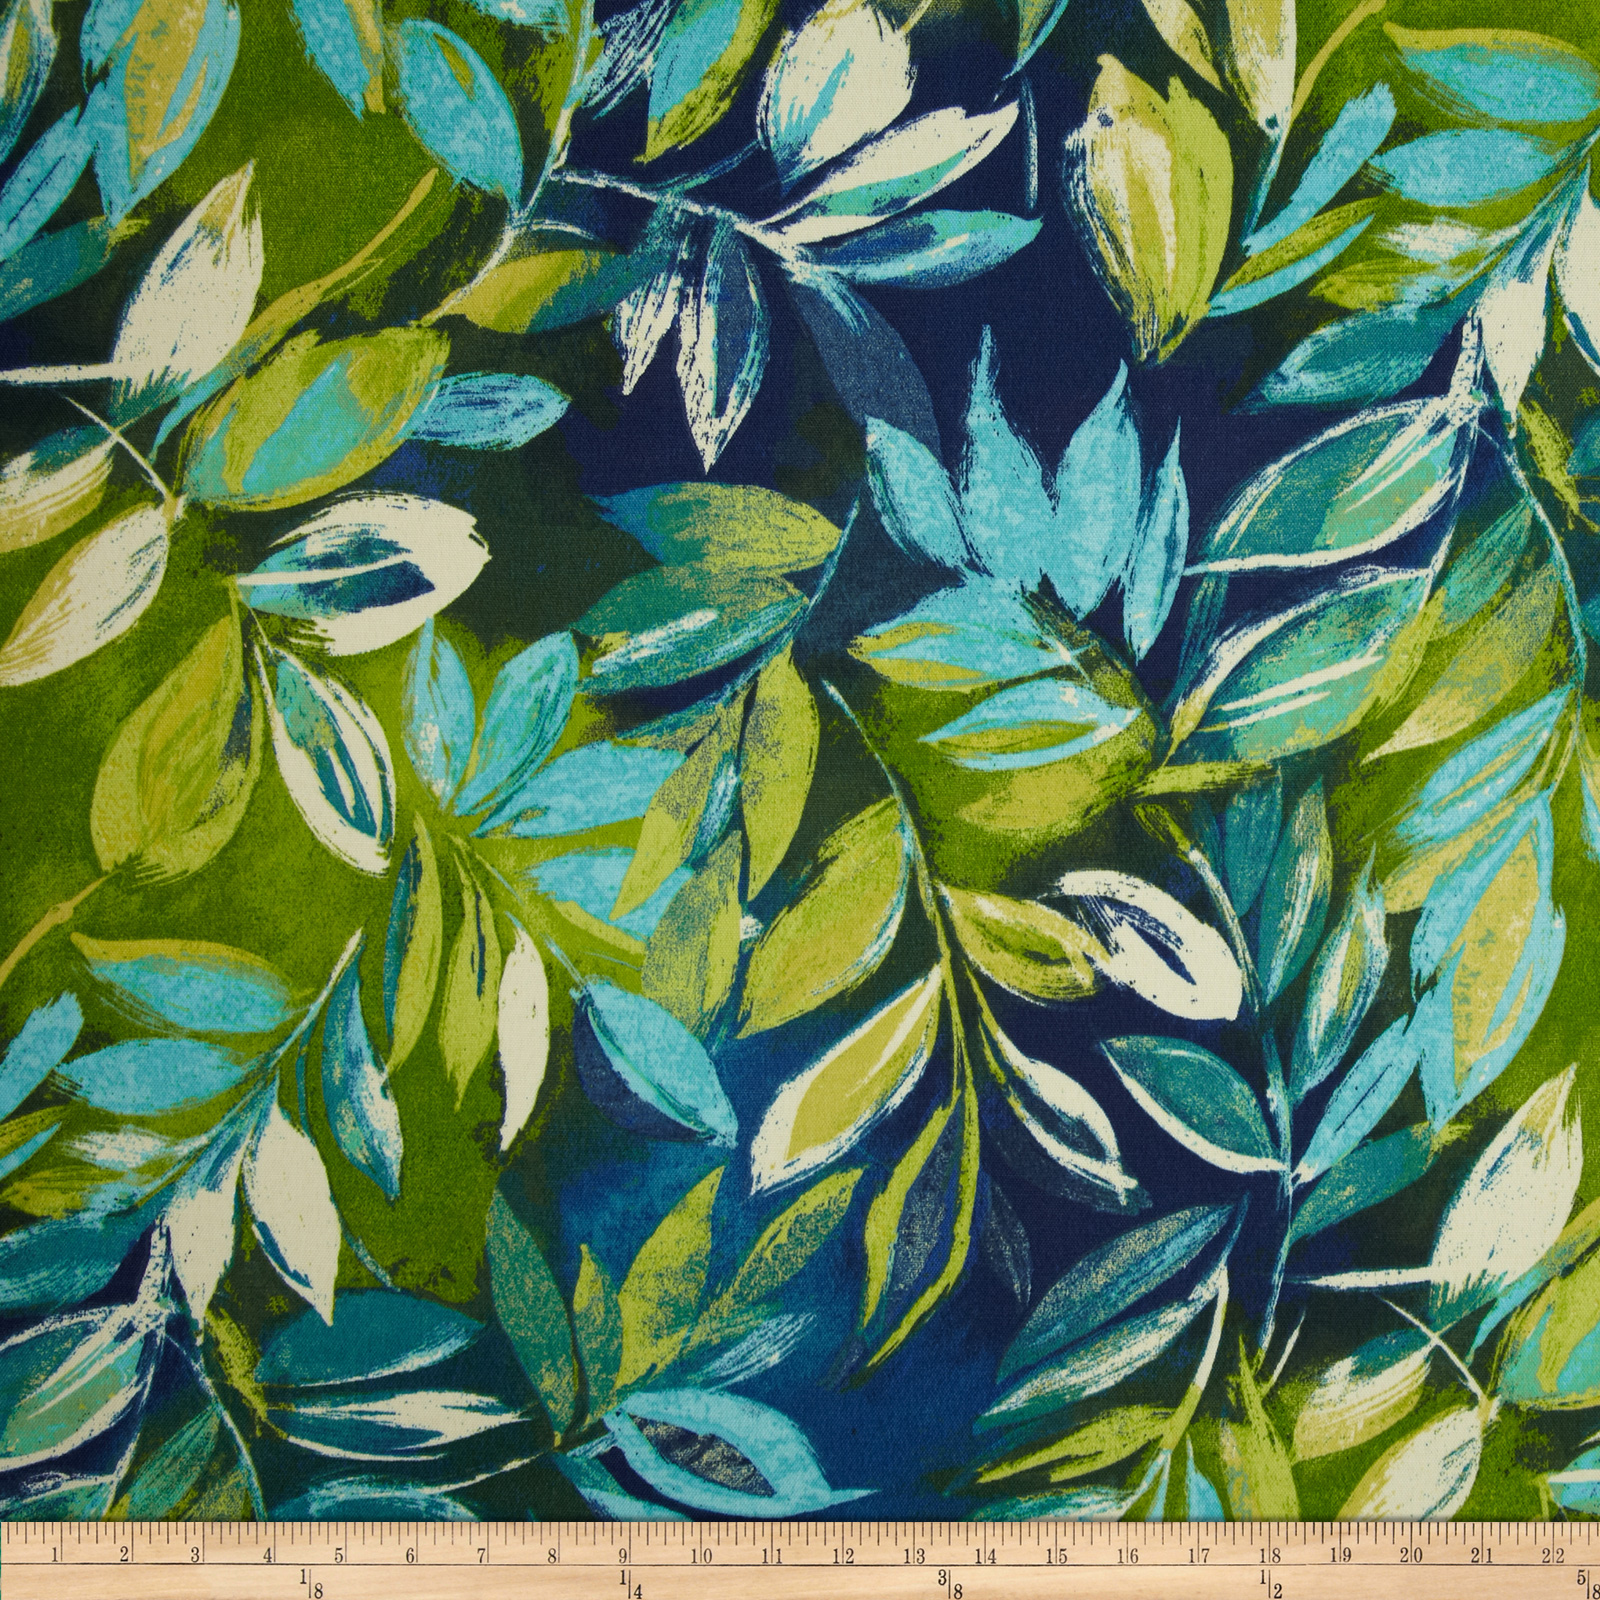 Bryant Indoor/outdoor Seabreeze Lagoon Fabric